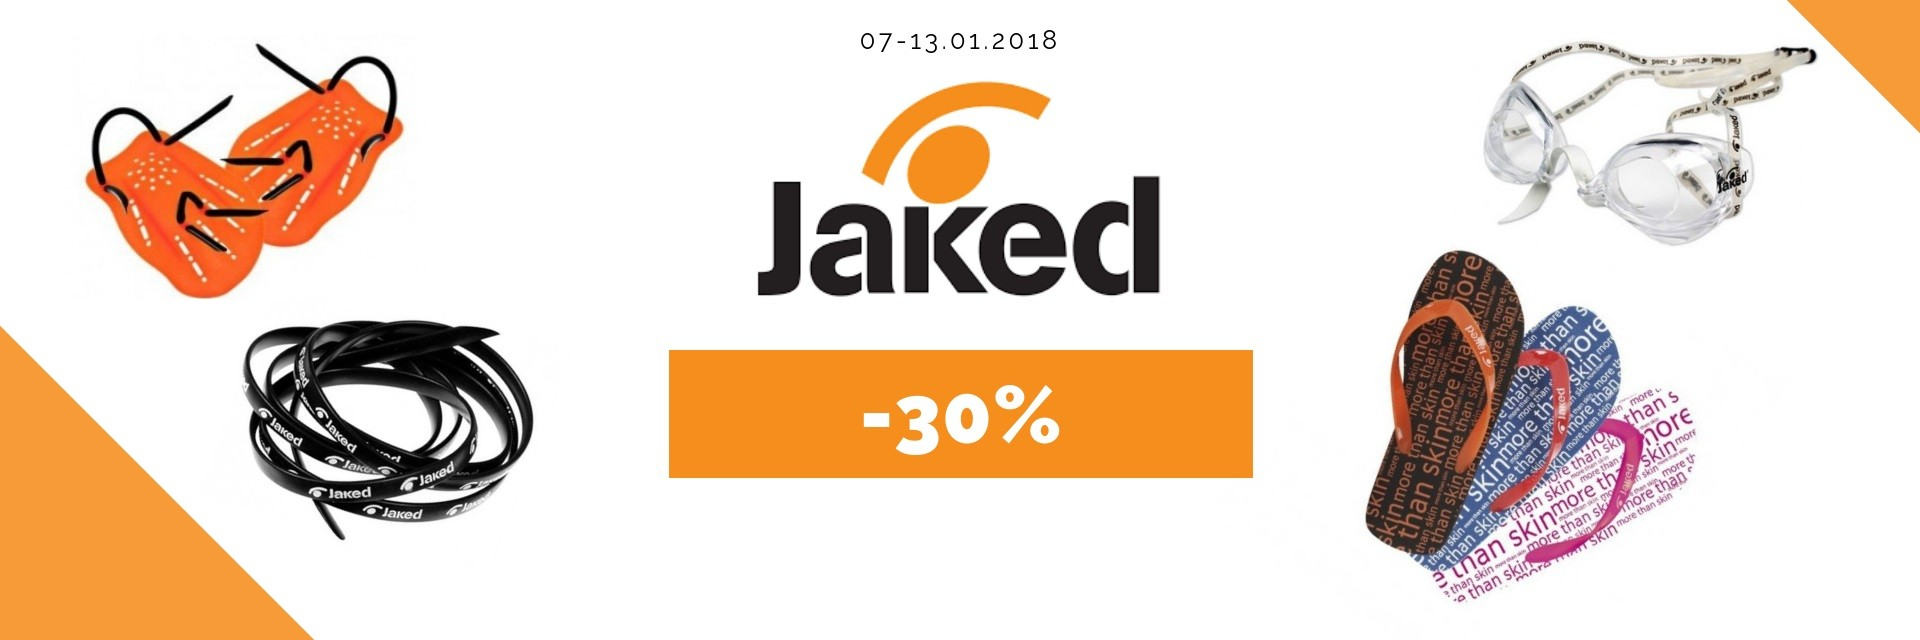 Jaked -30%!